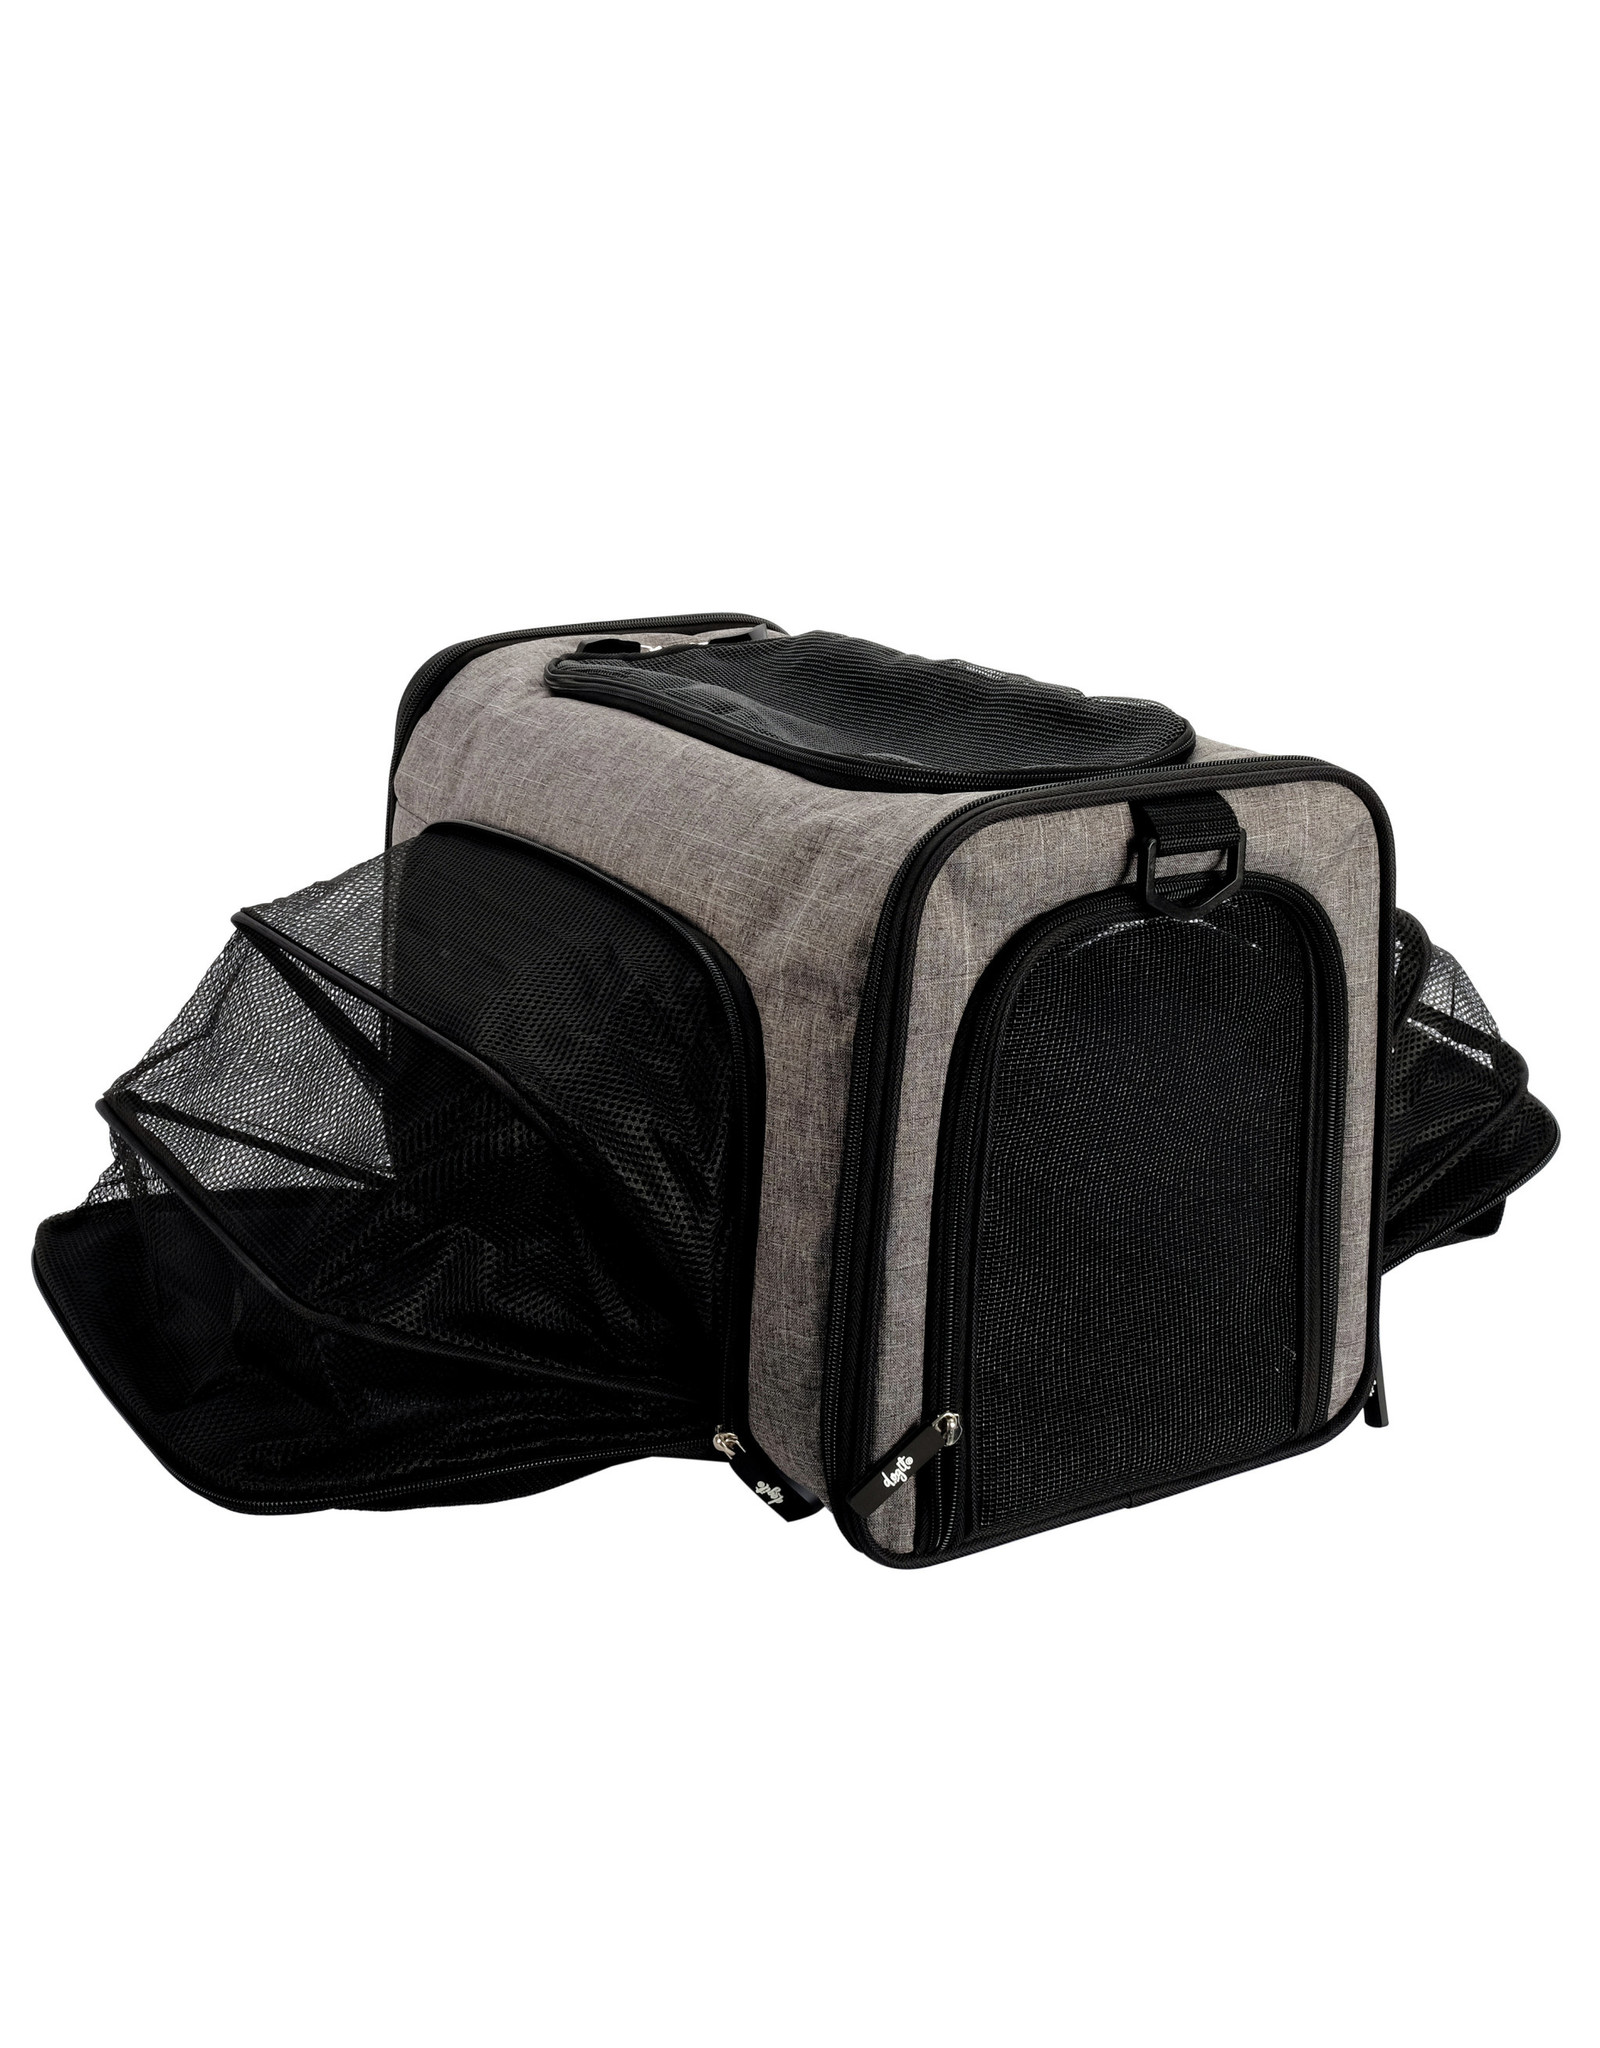 DogIt Soft Carrier Expandable Carry Bag Gray